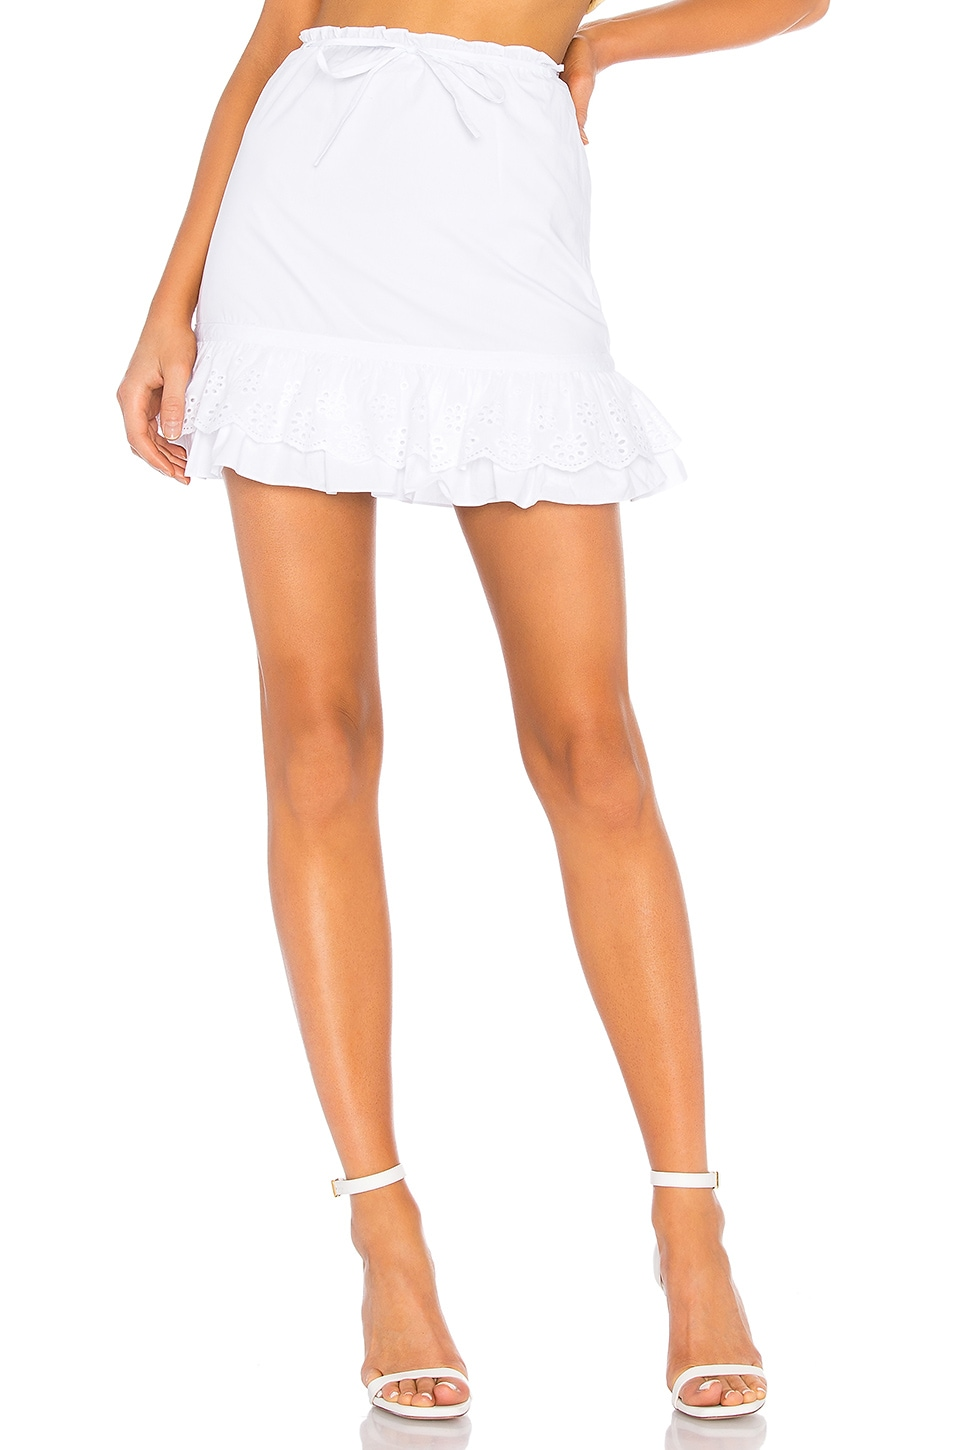 Lovers + Friends Jenna Skirt in White